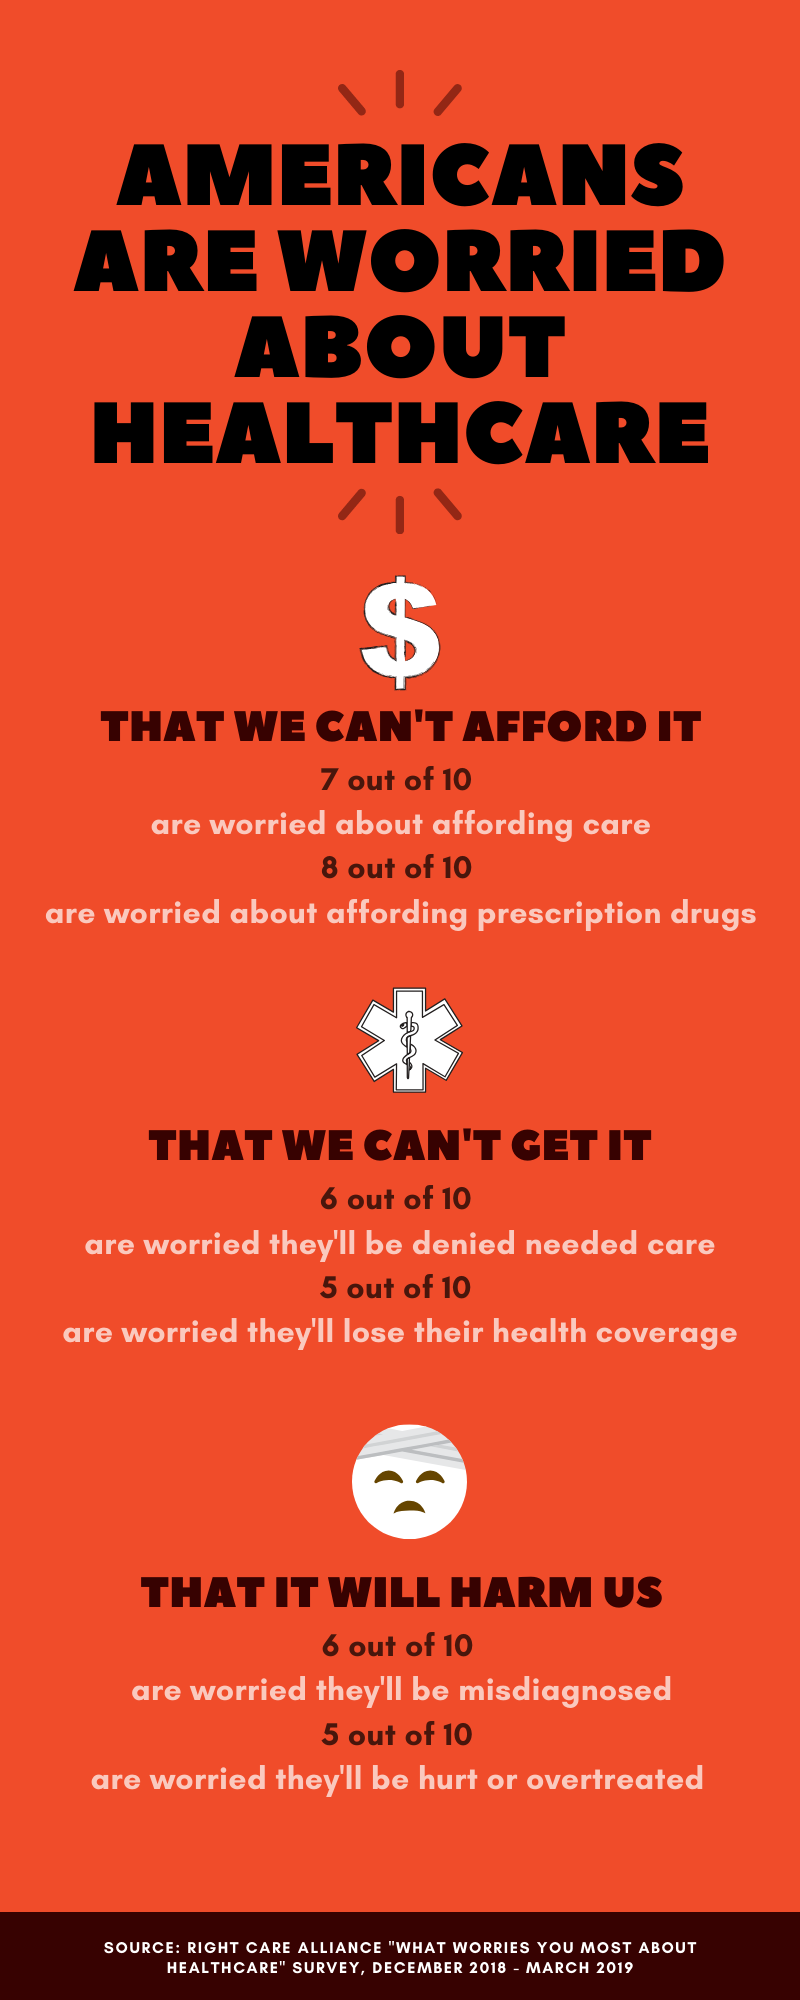 infographic of American healthcare worries, red background with white and black text